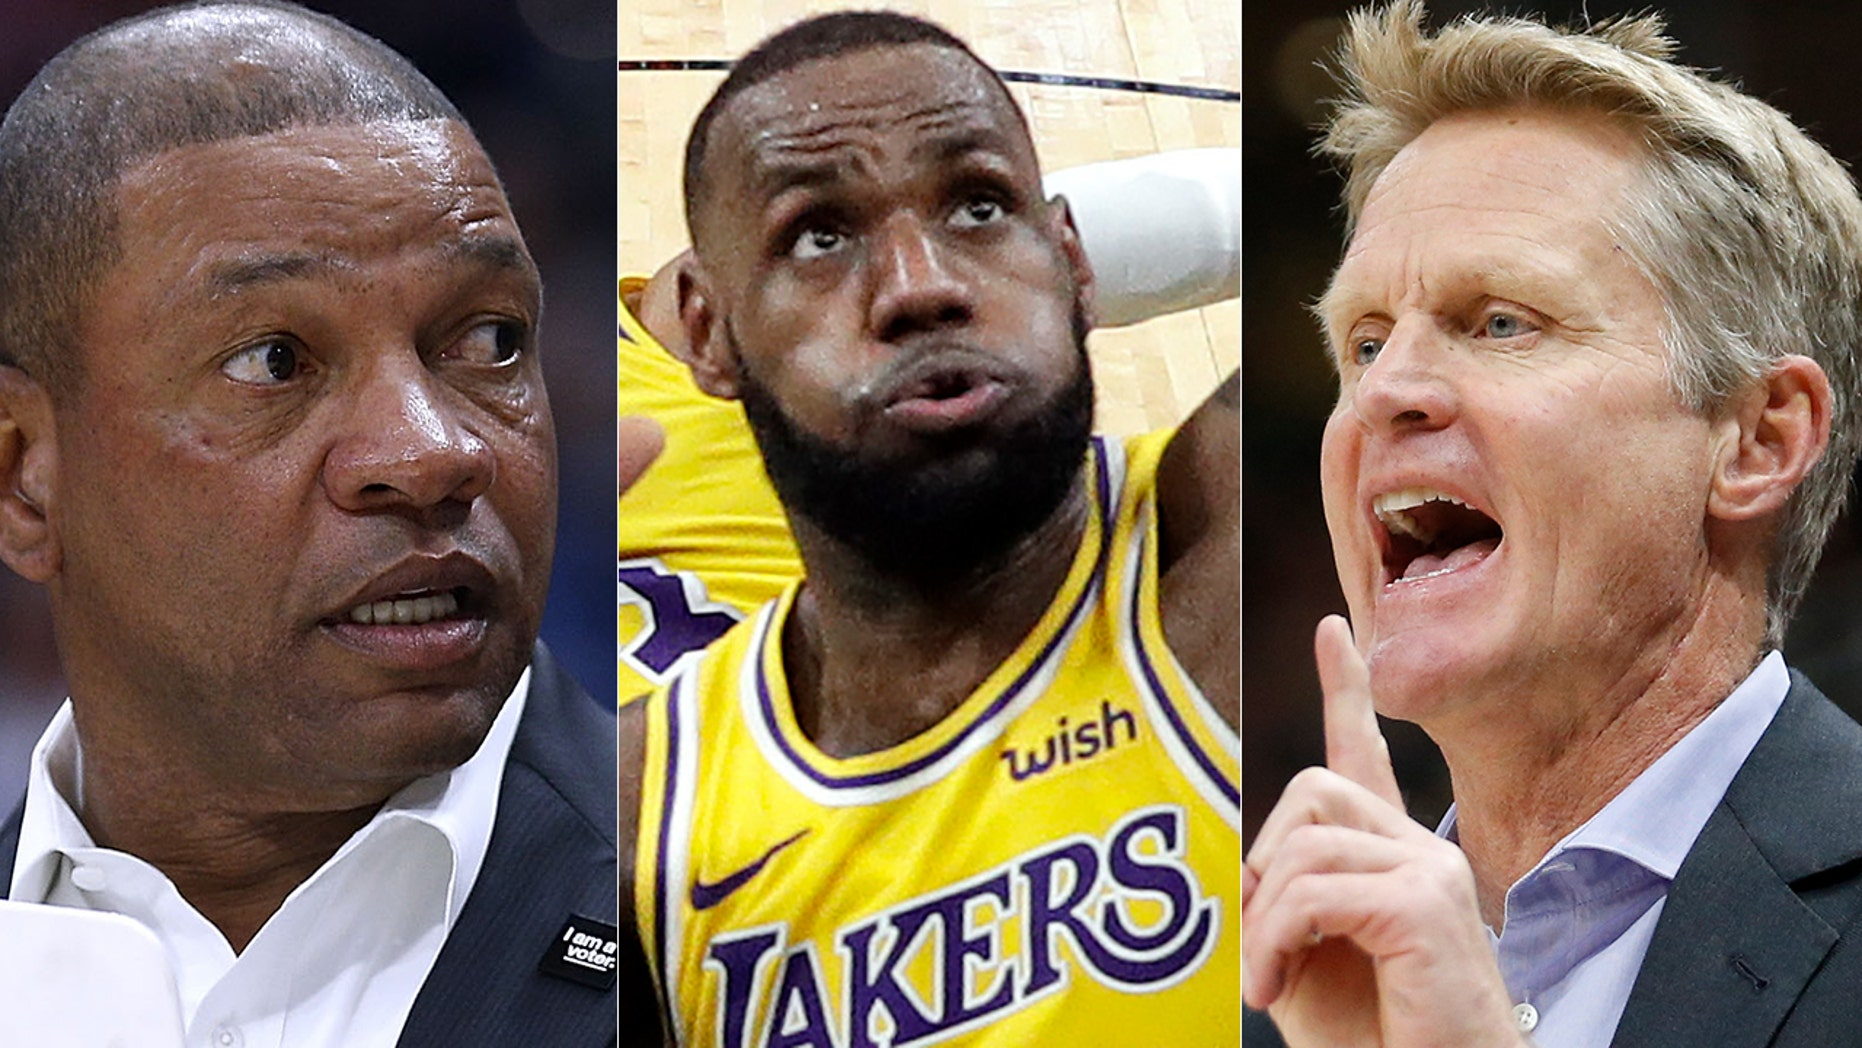 Doc Rivers, left, LeBron James, center, and Steve Kerr have been the top NBA voices to address political issues ahead of the midterms.